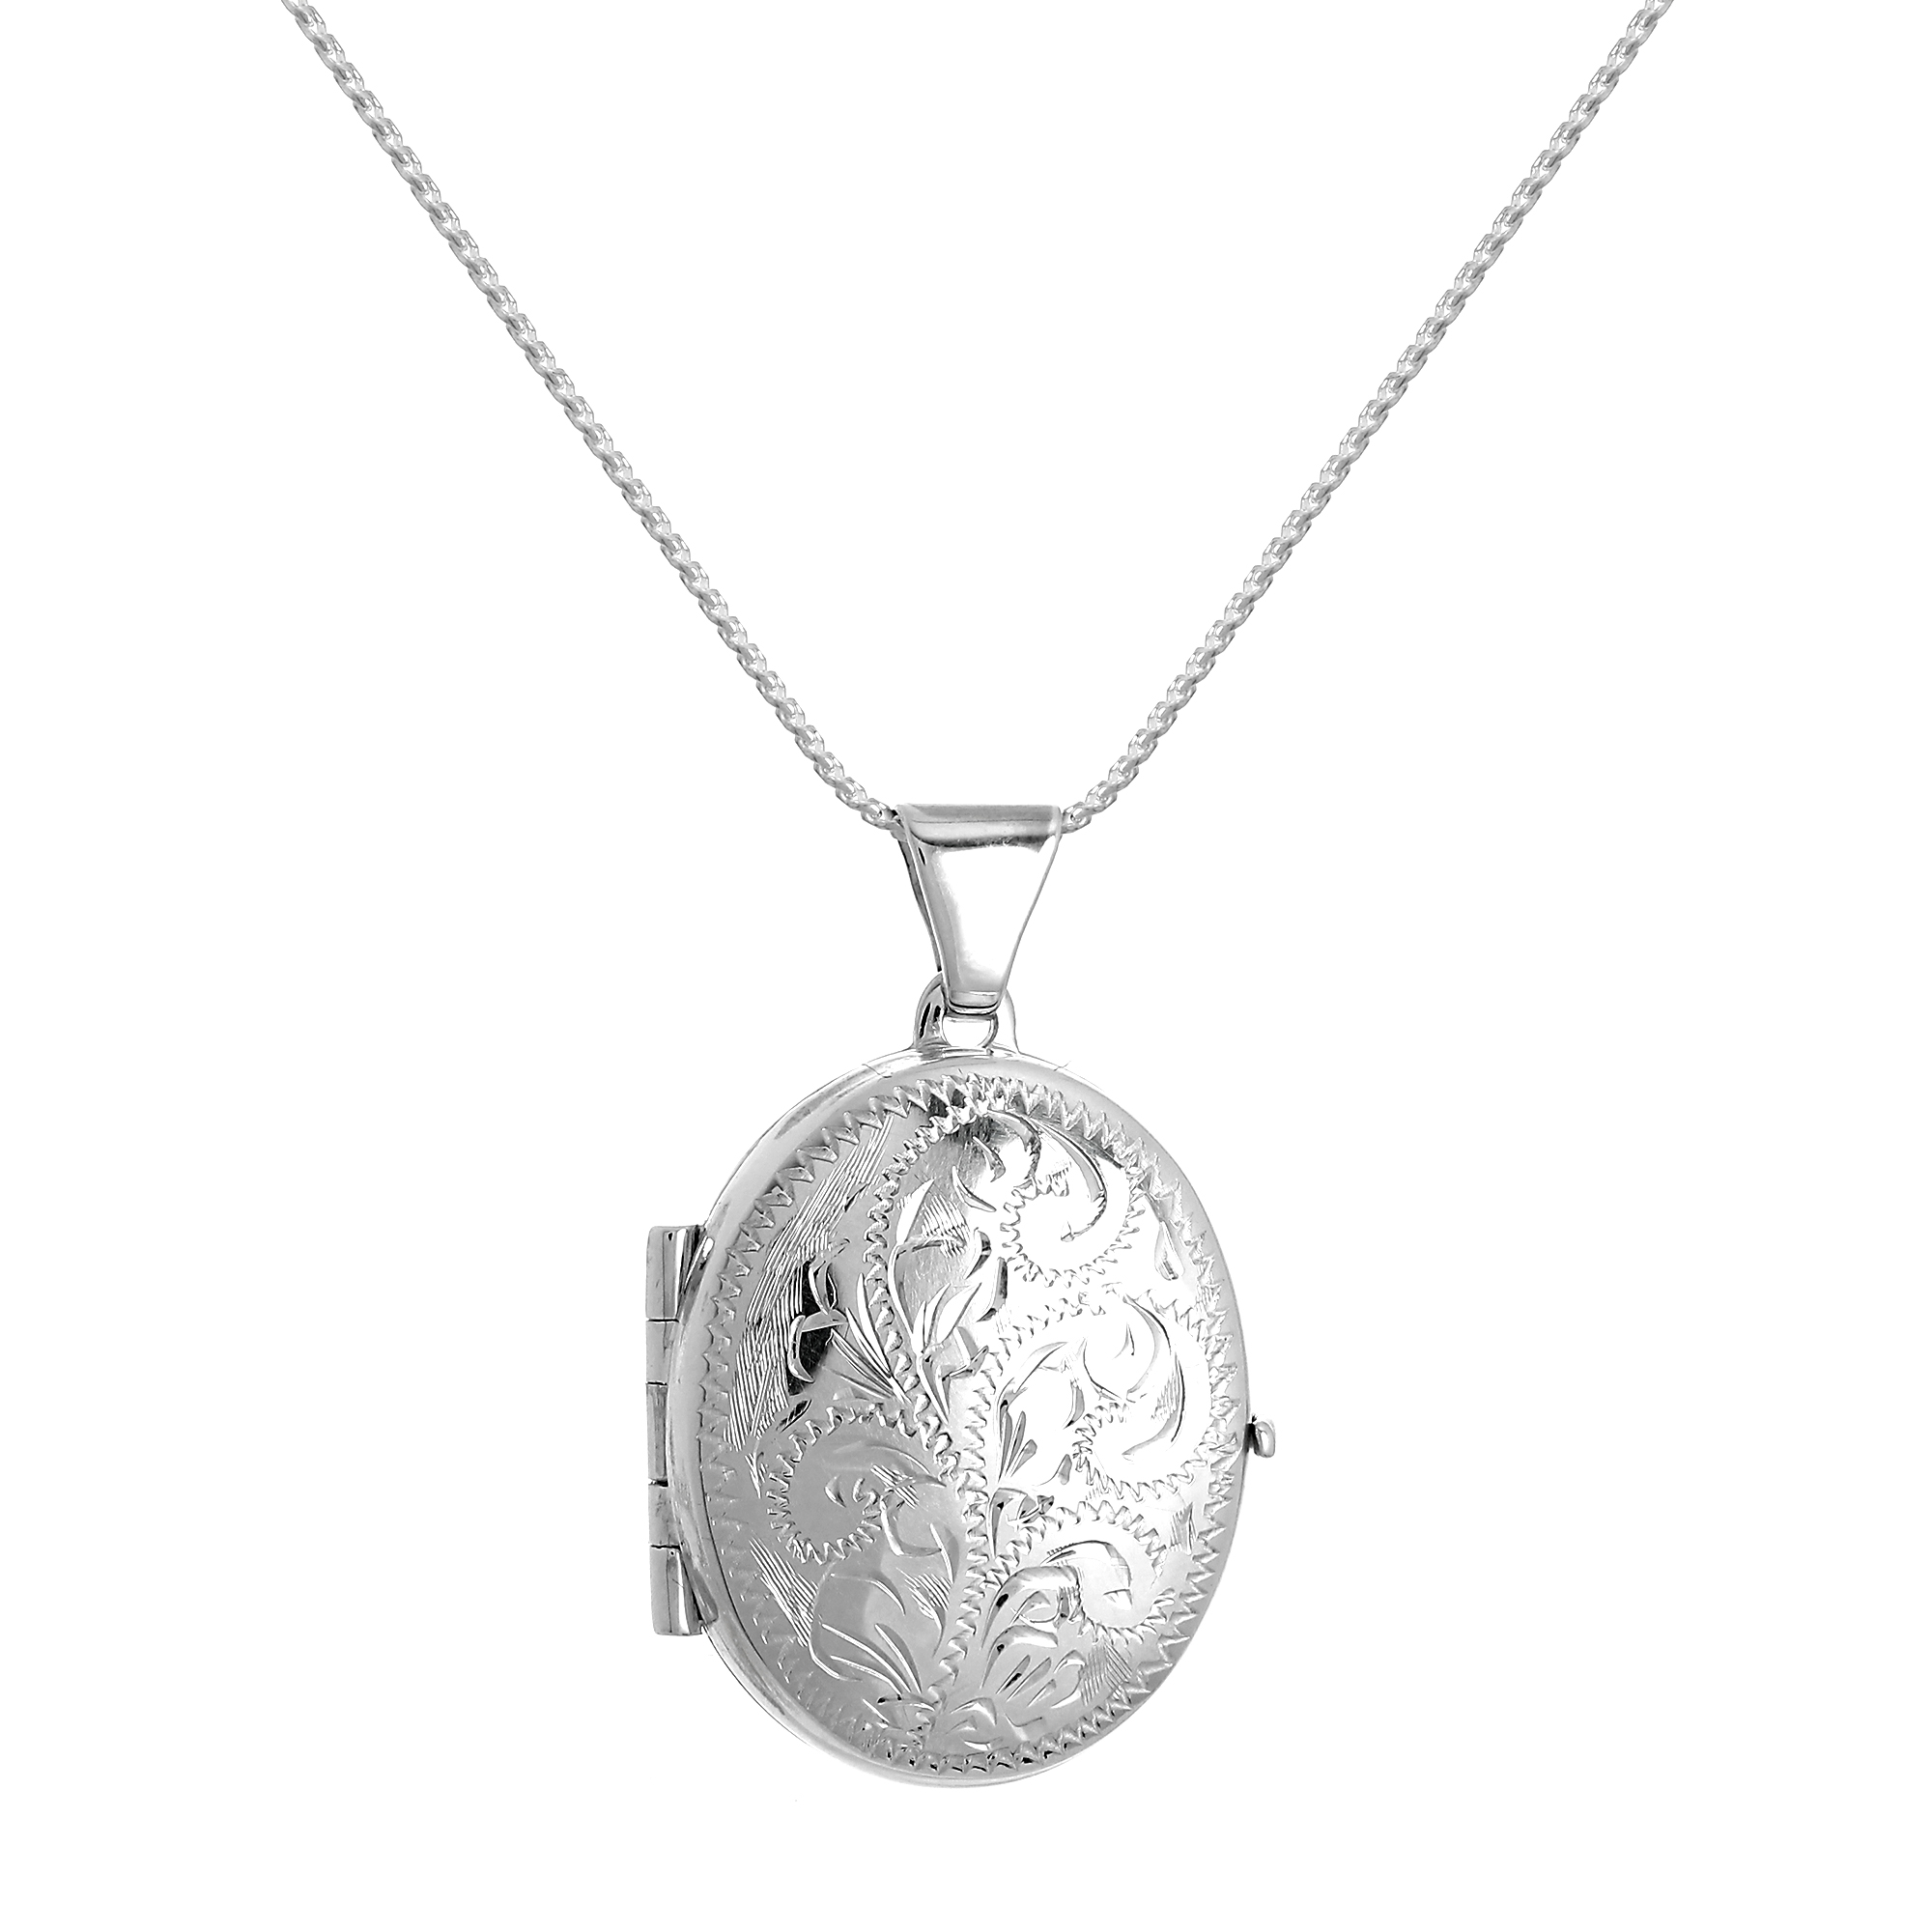 An image of Sterling Silver Engraved Oval 4 Photo Family Locket on 18 Inch Chain